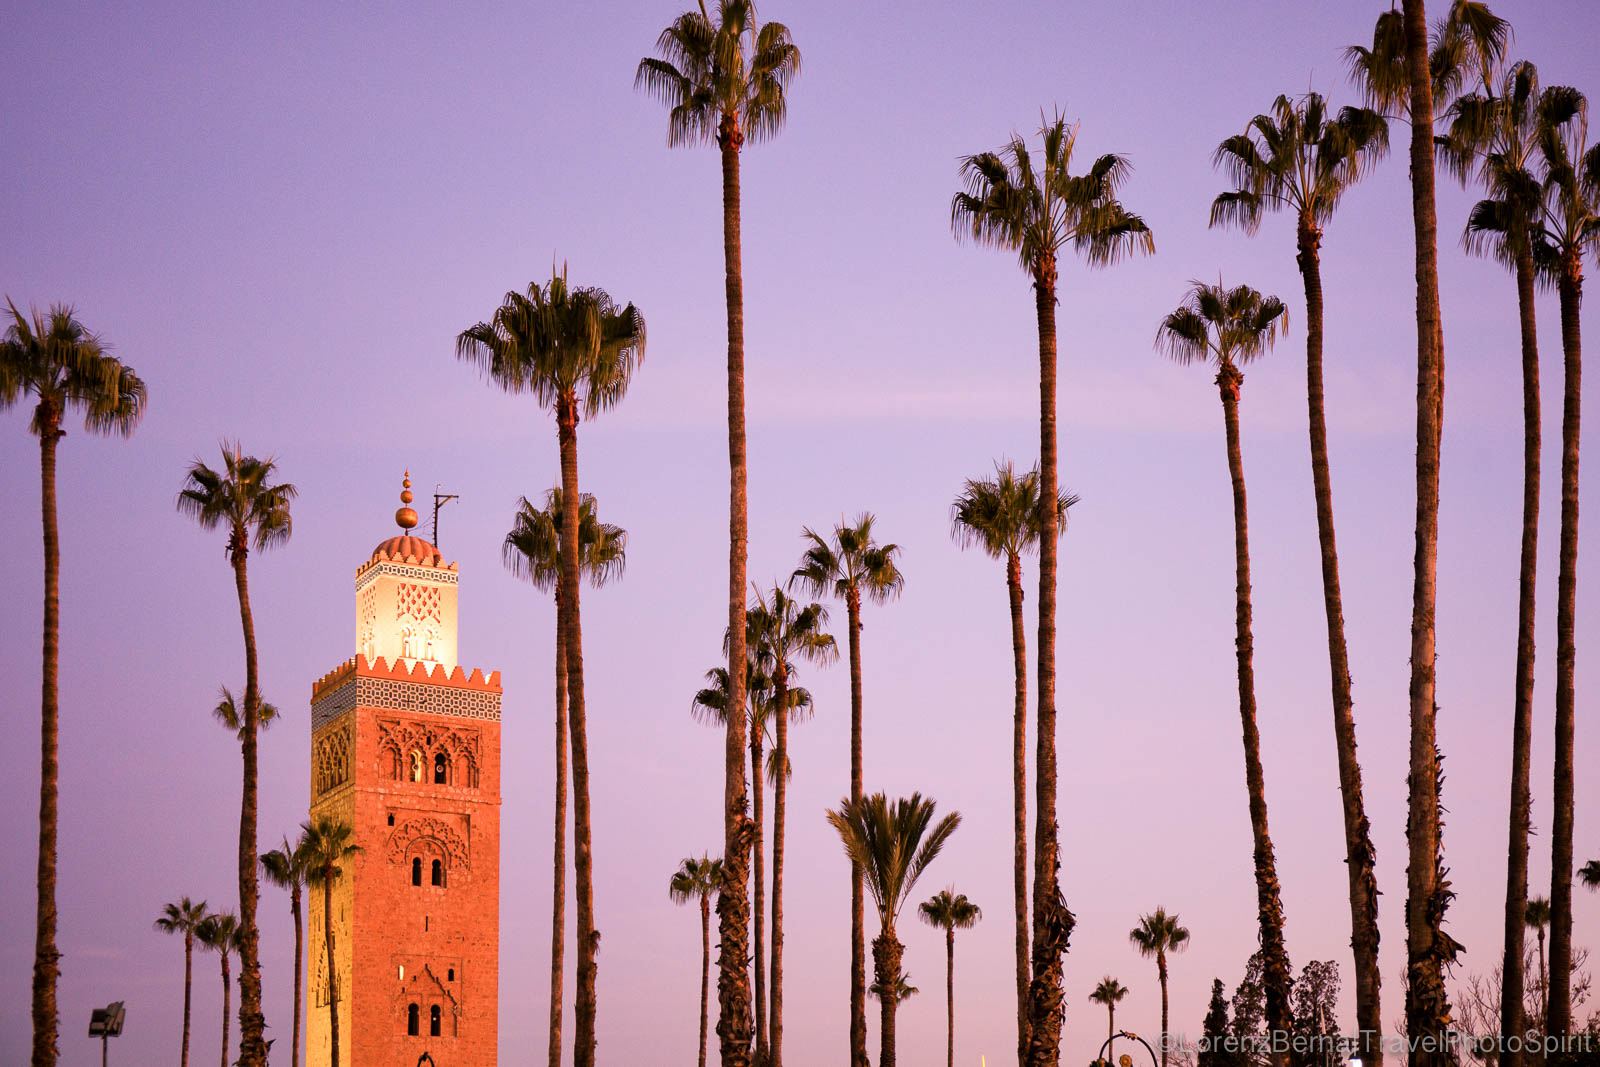 The minaret of the Koutoubia mosque in Marrakech at sunrise. Morocco Travel photography by Lorenz Berna